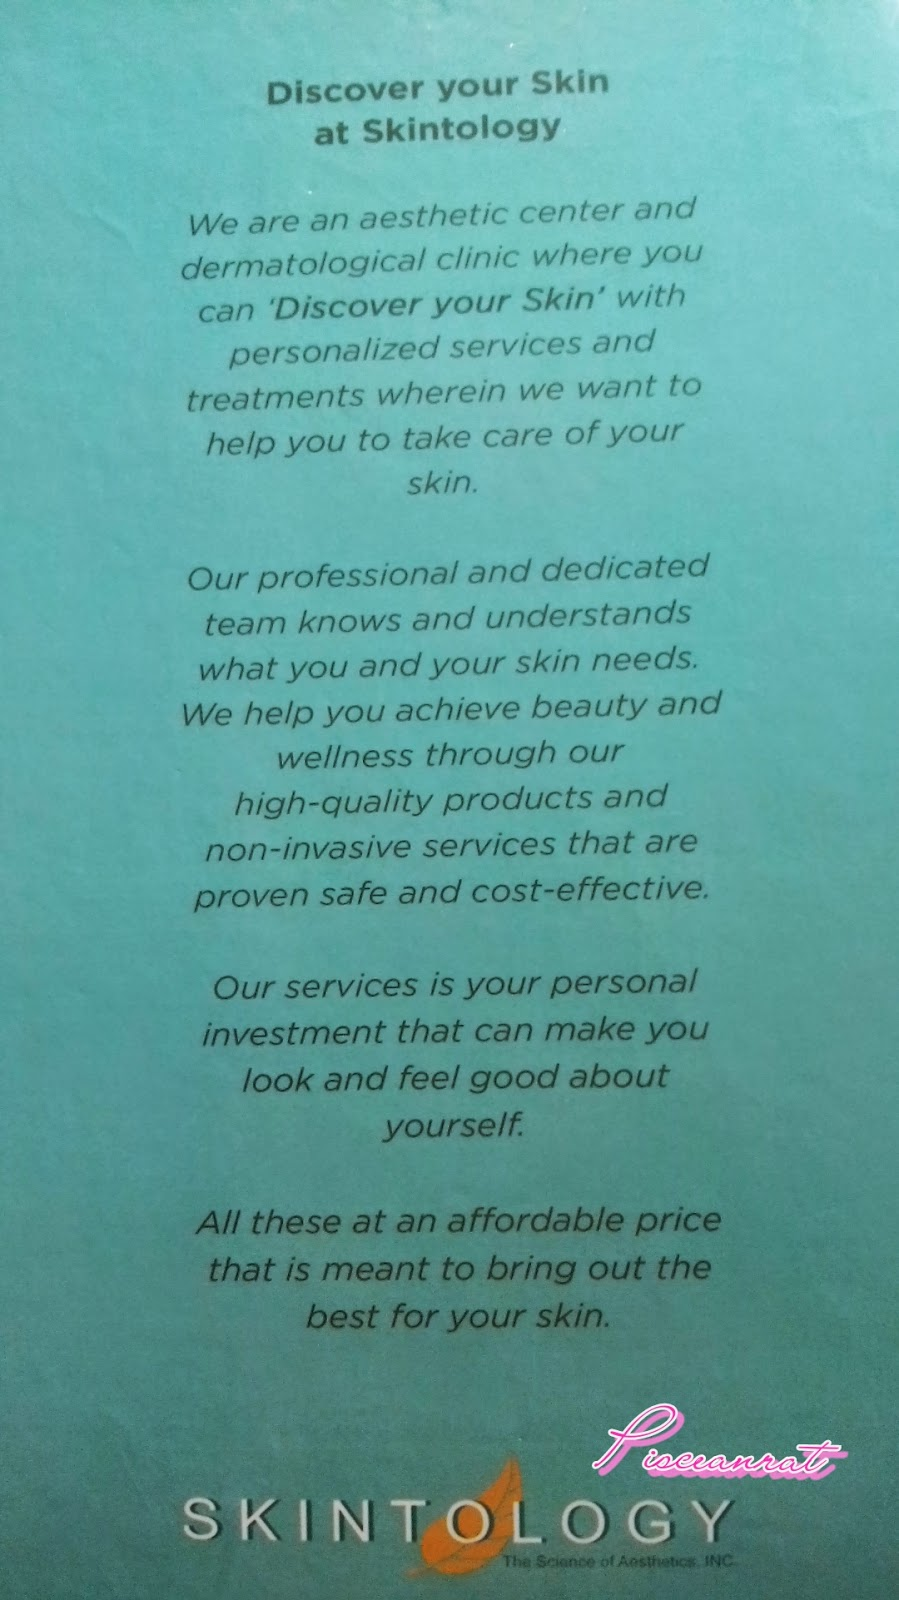 skintology address